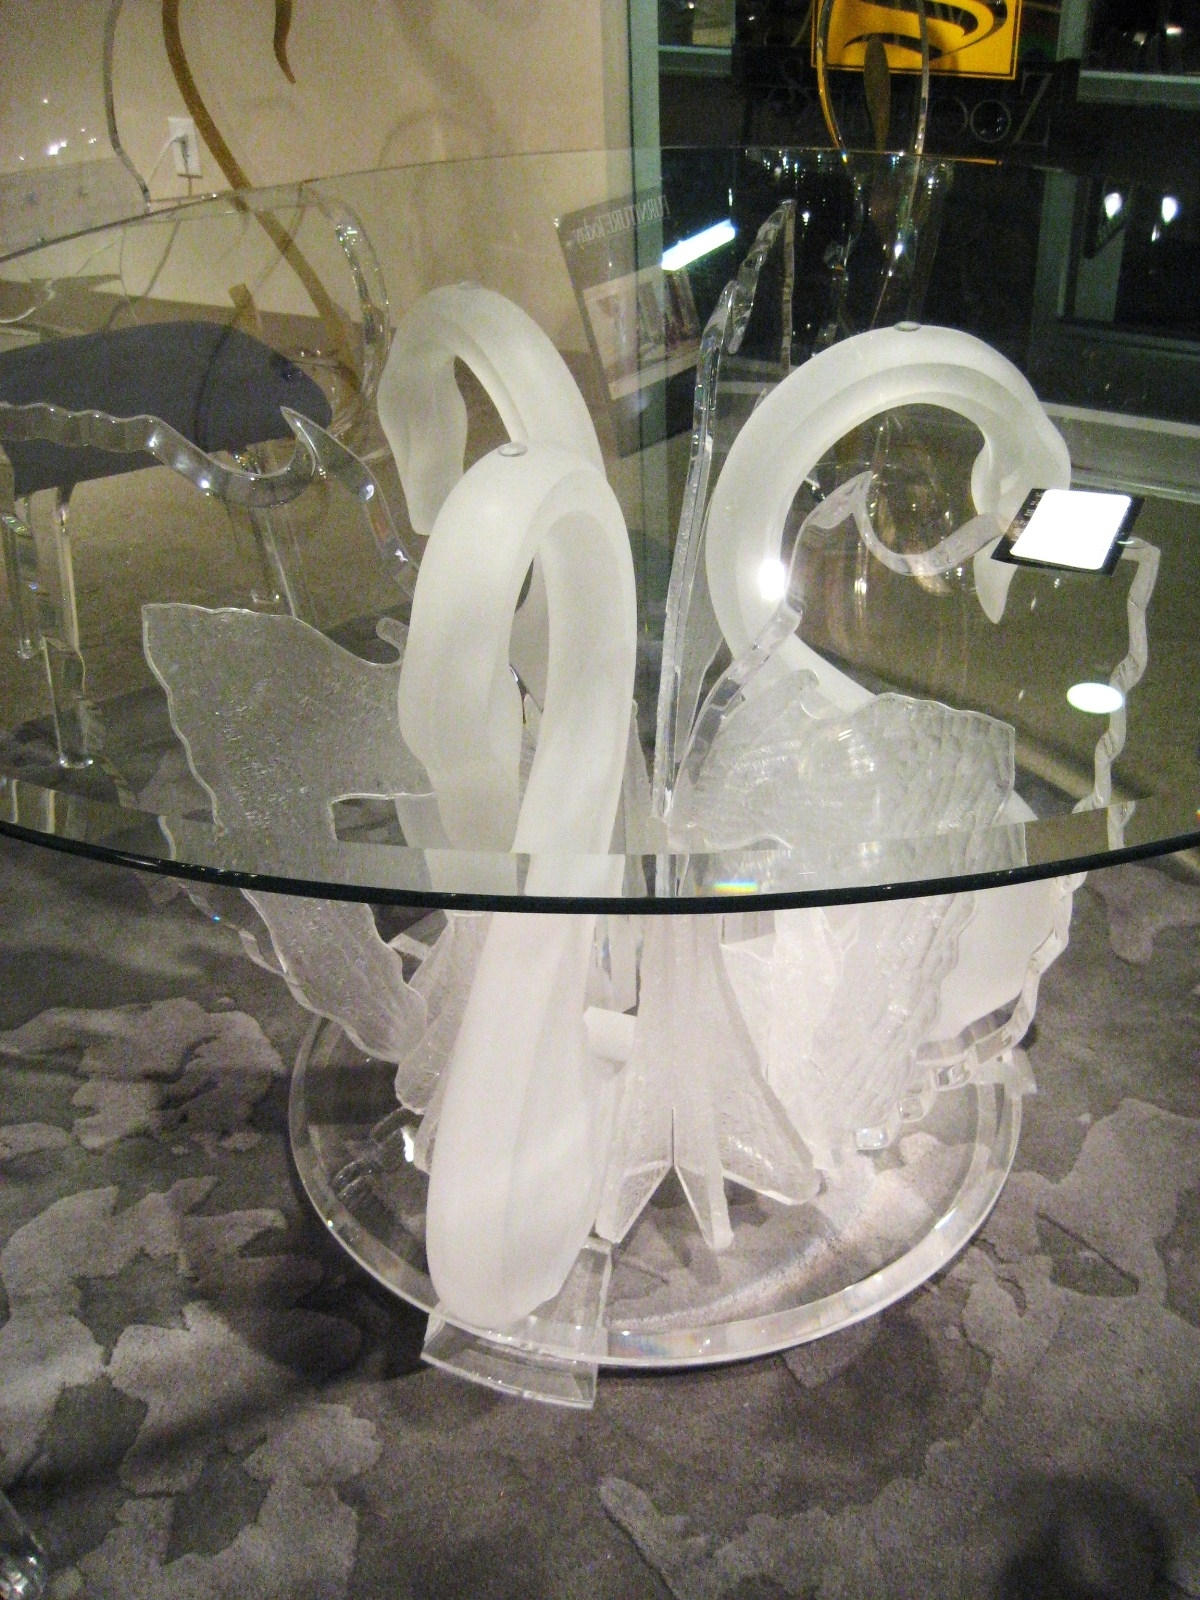 Popular Legend Swan Dinette, Acrylic Wall Art, Acrylic Furniture Within Round Acrylic Dining Tables (Gallery 18 of 25)